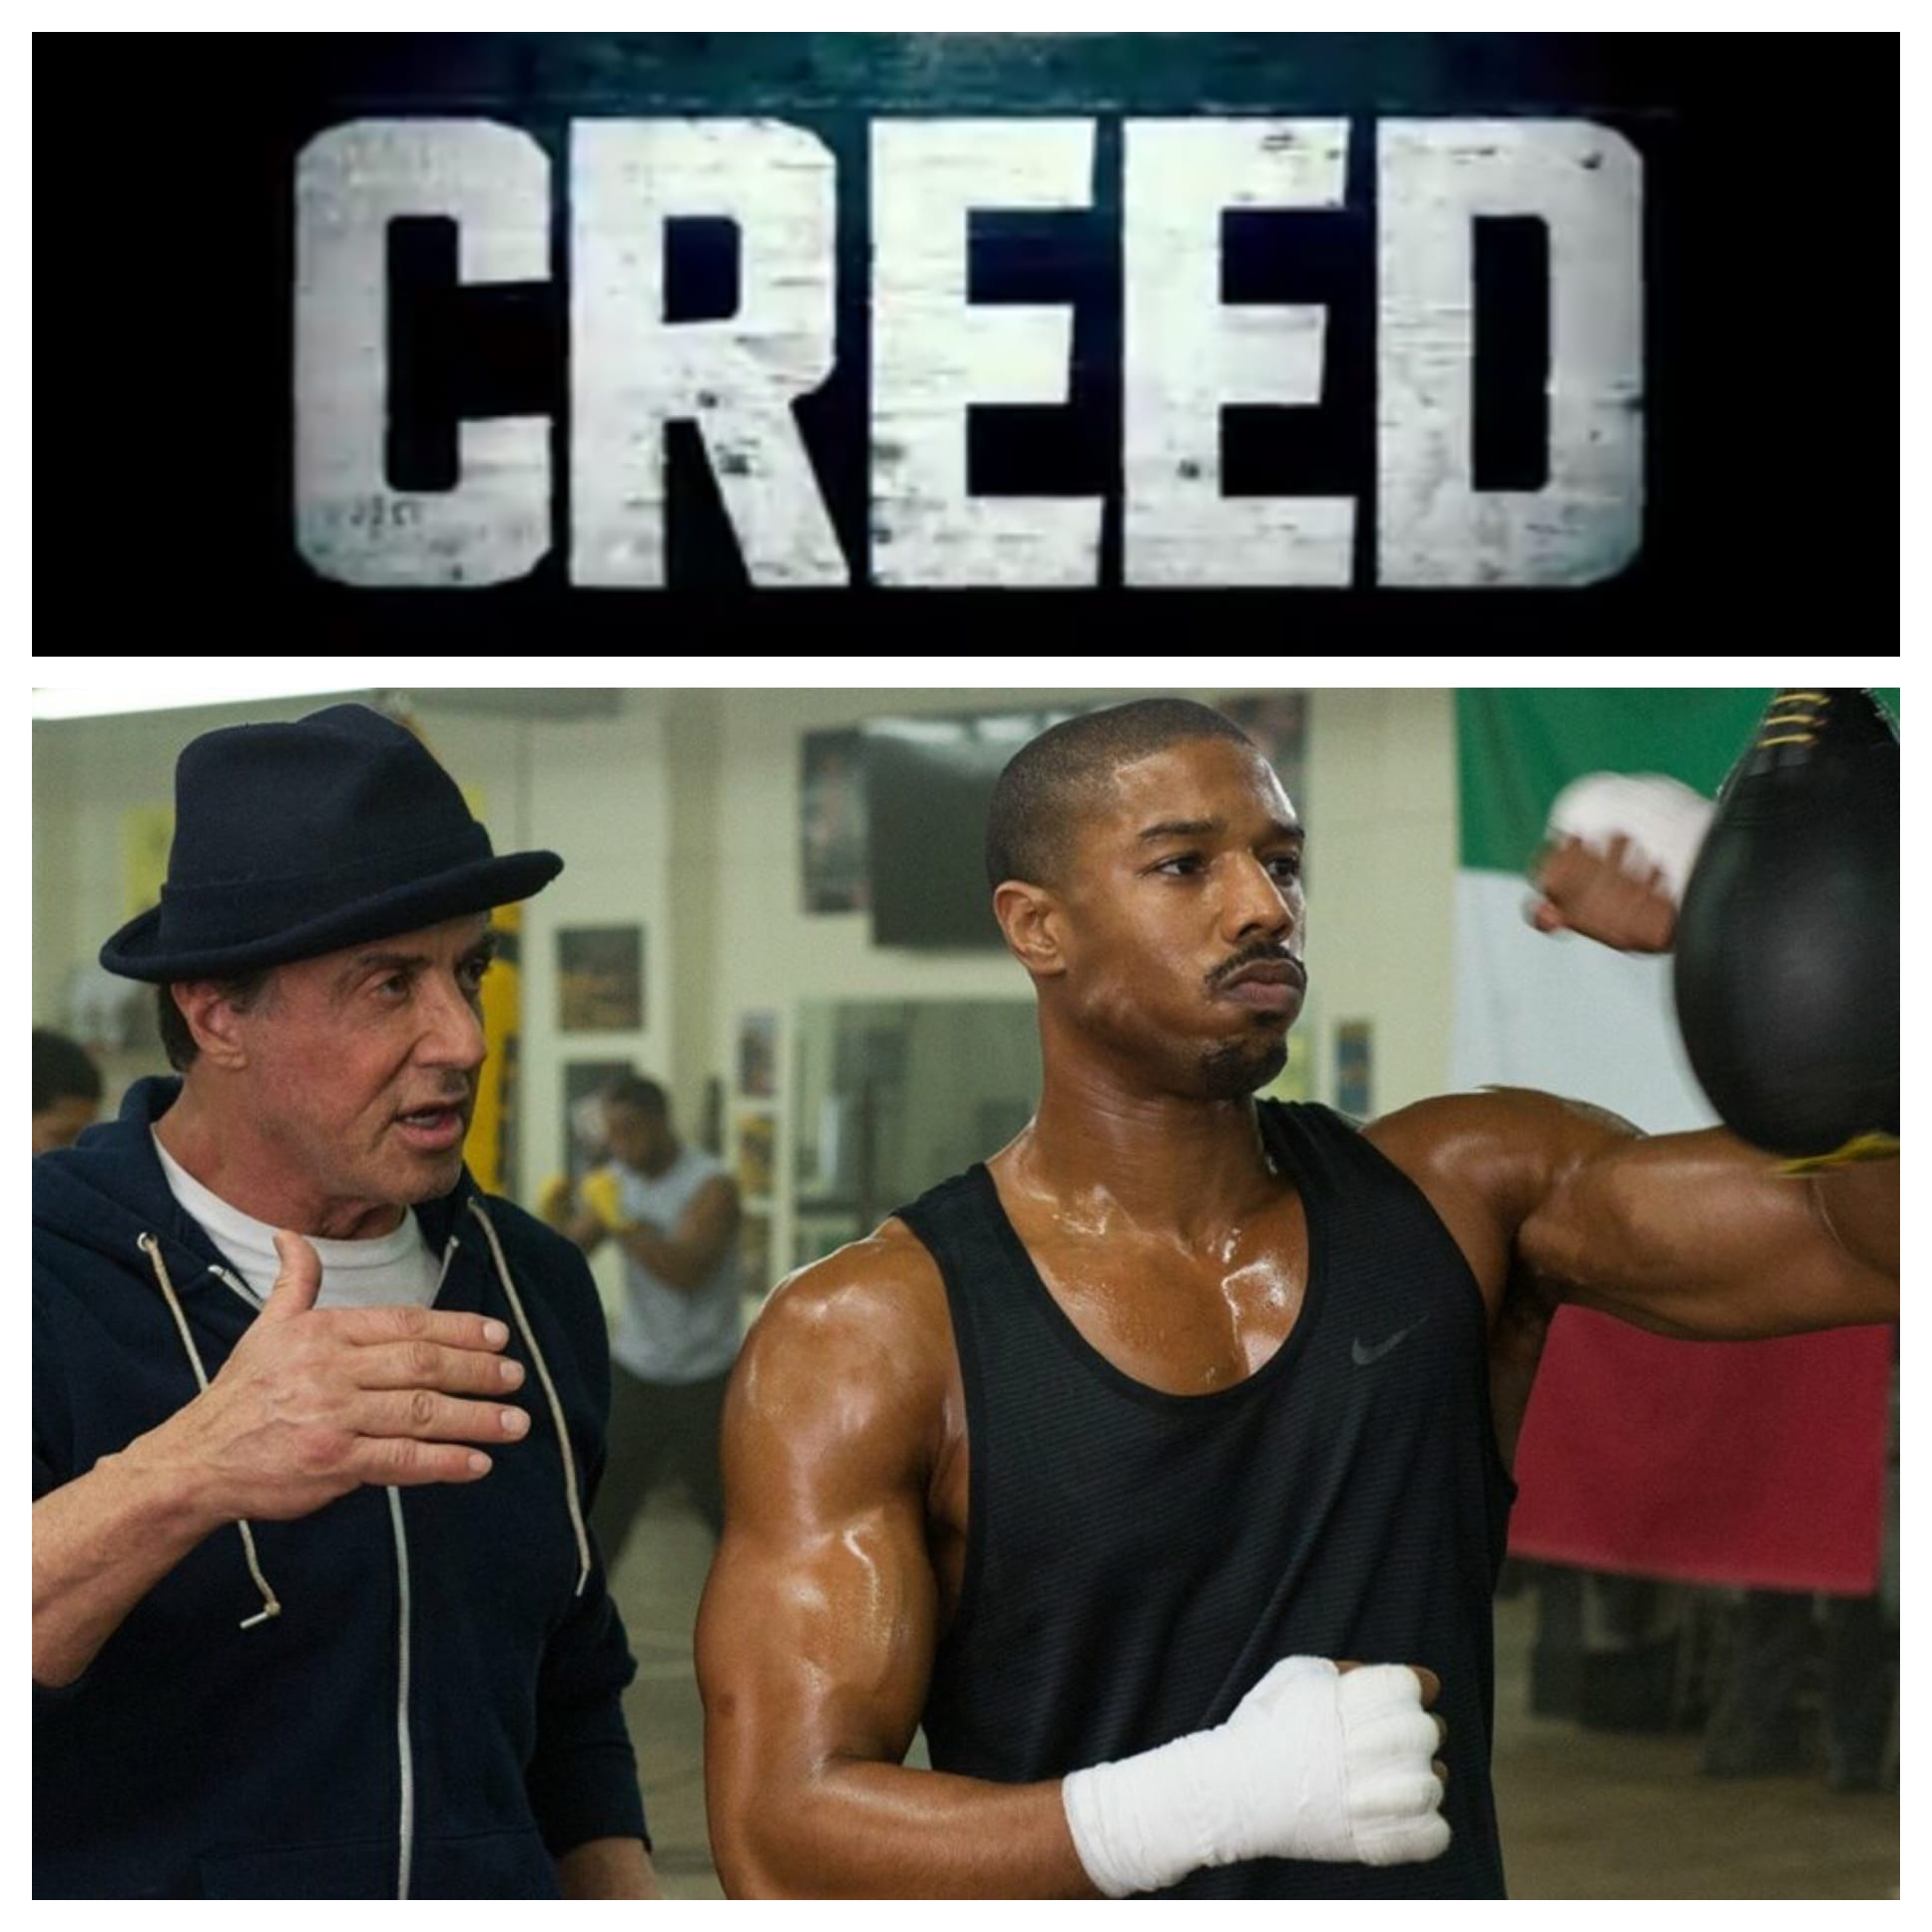 Creed HD pictures